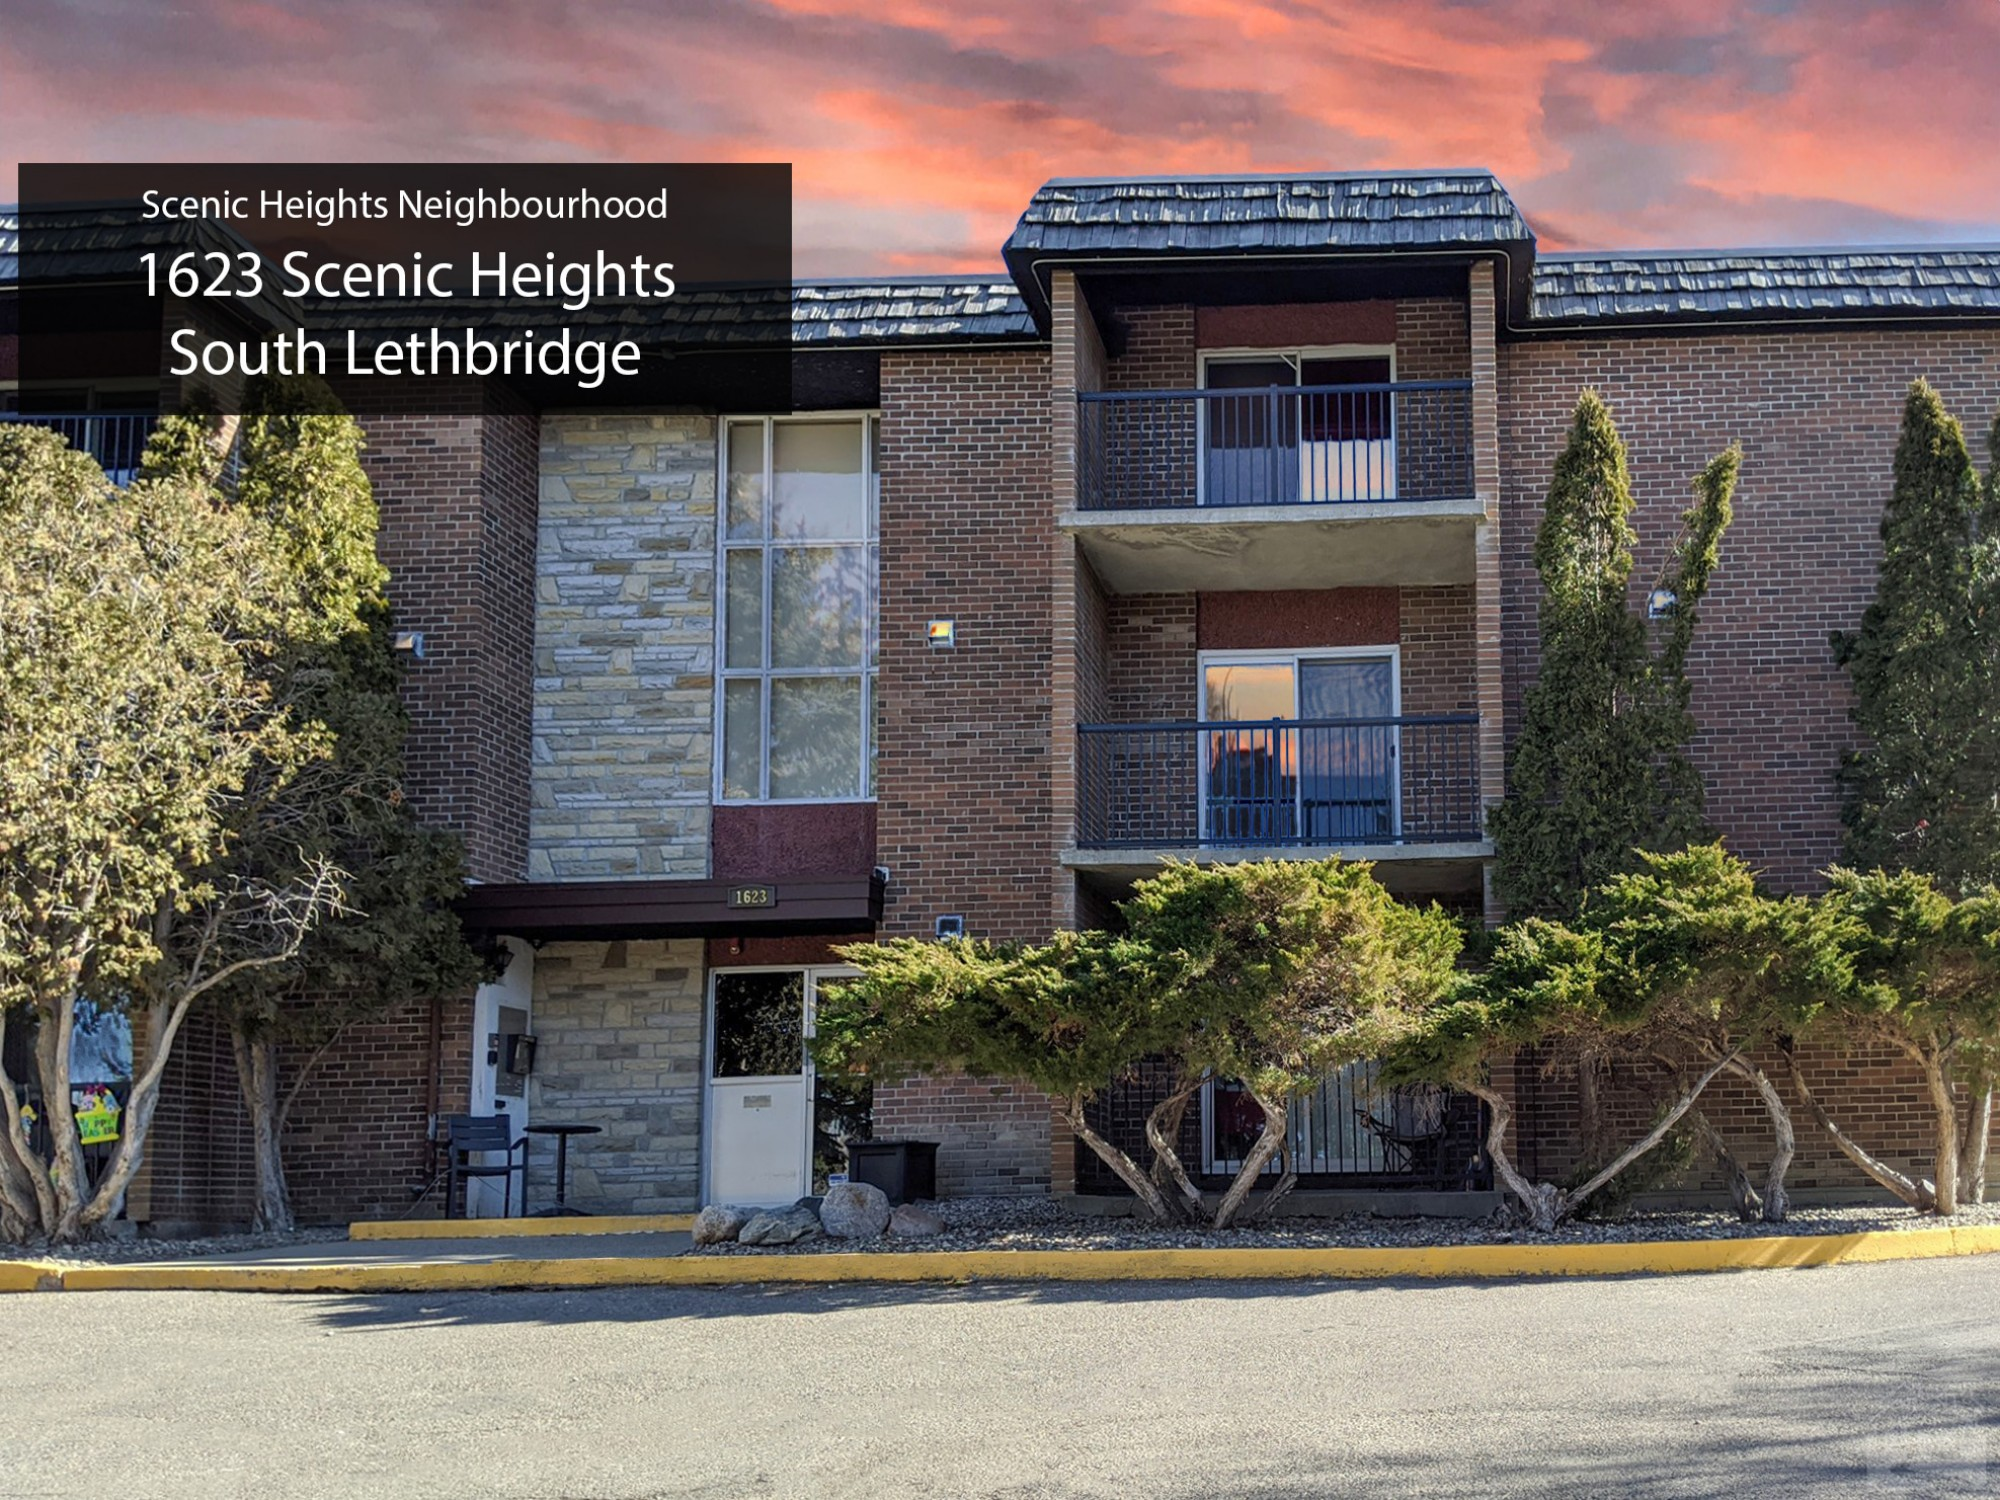 1623 Scenic Heights South Lethbridge (Unit 202) Cover image